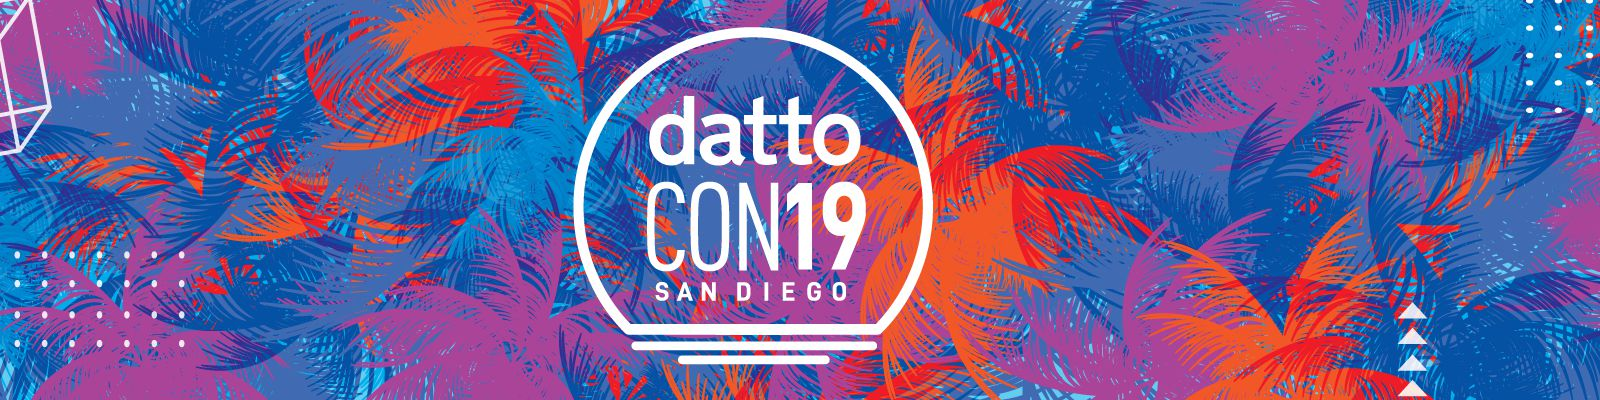 Why You Should Attend DattoCon19